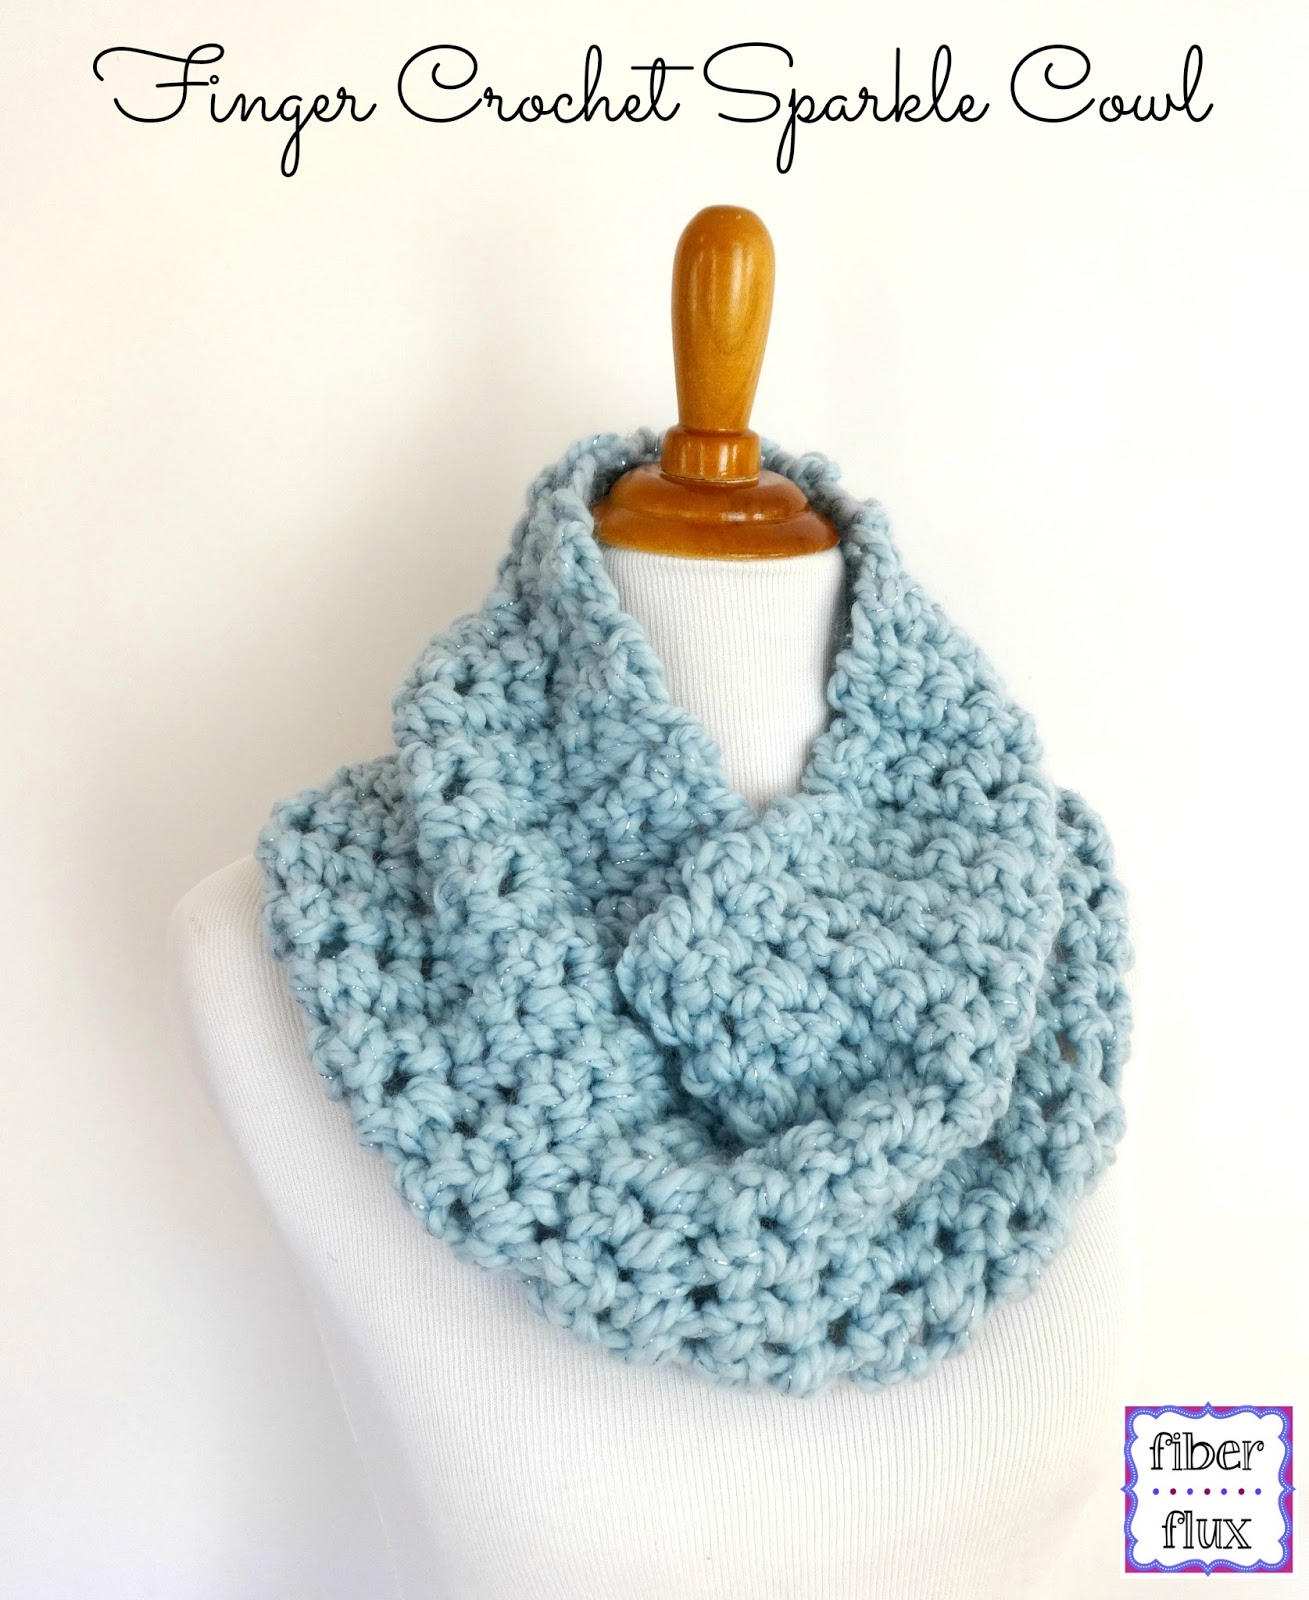 Crocheting Your Fingers : Fiber Flux: Free Crochet Pattern...Finger Crochet Sparkle Cowl!